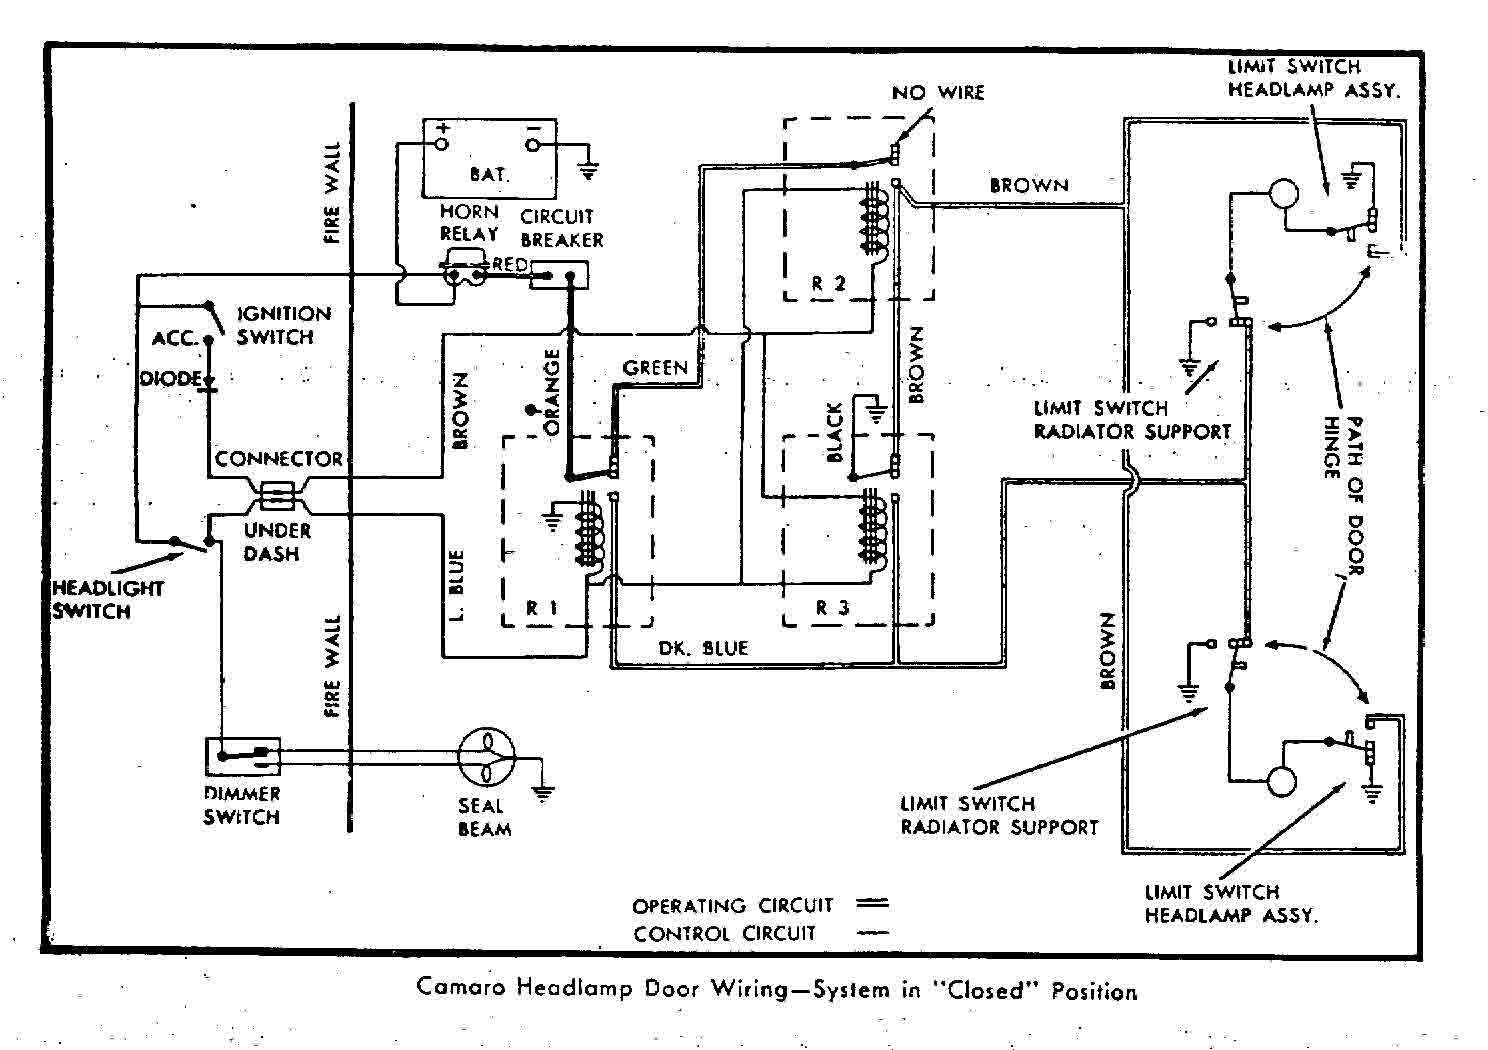 1967 camaro wiring diagram pdf wiring diagram rh blaknwyt co 3-Way Switch Wiring Diagram Simple Wiring Diagrams